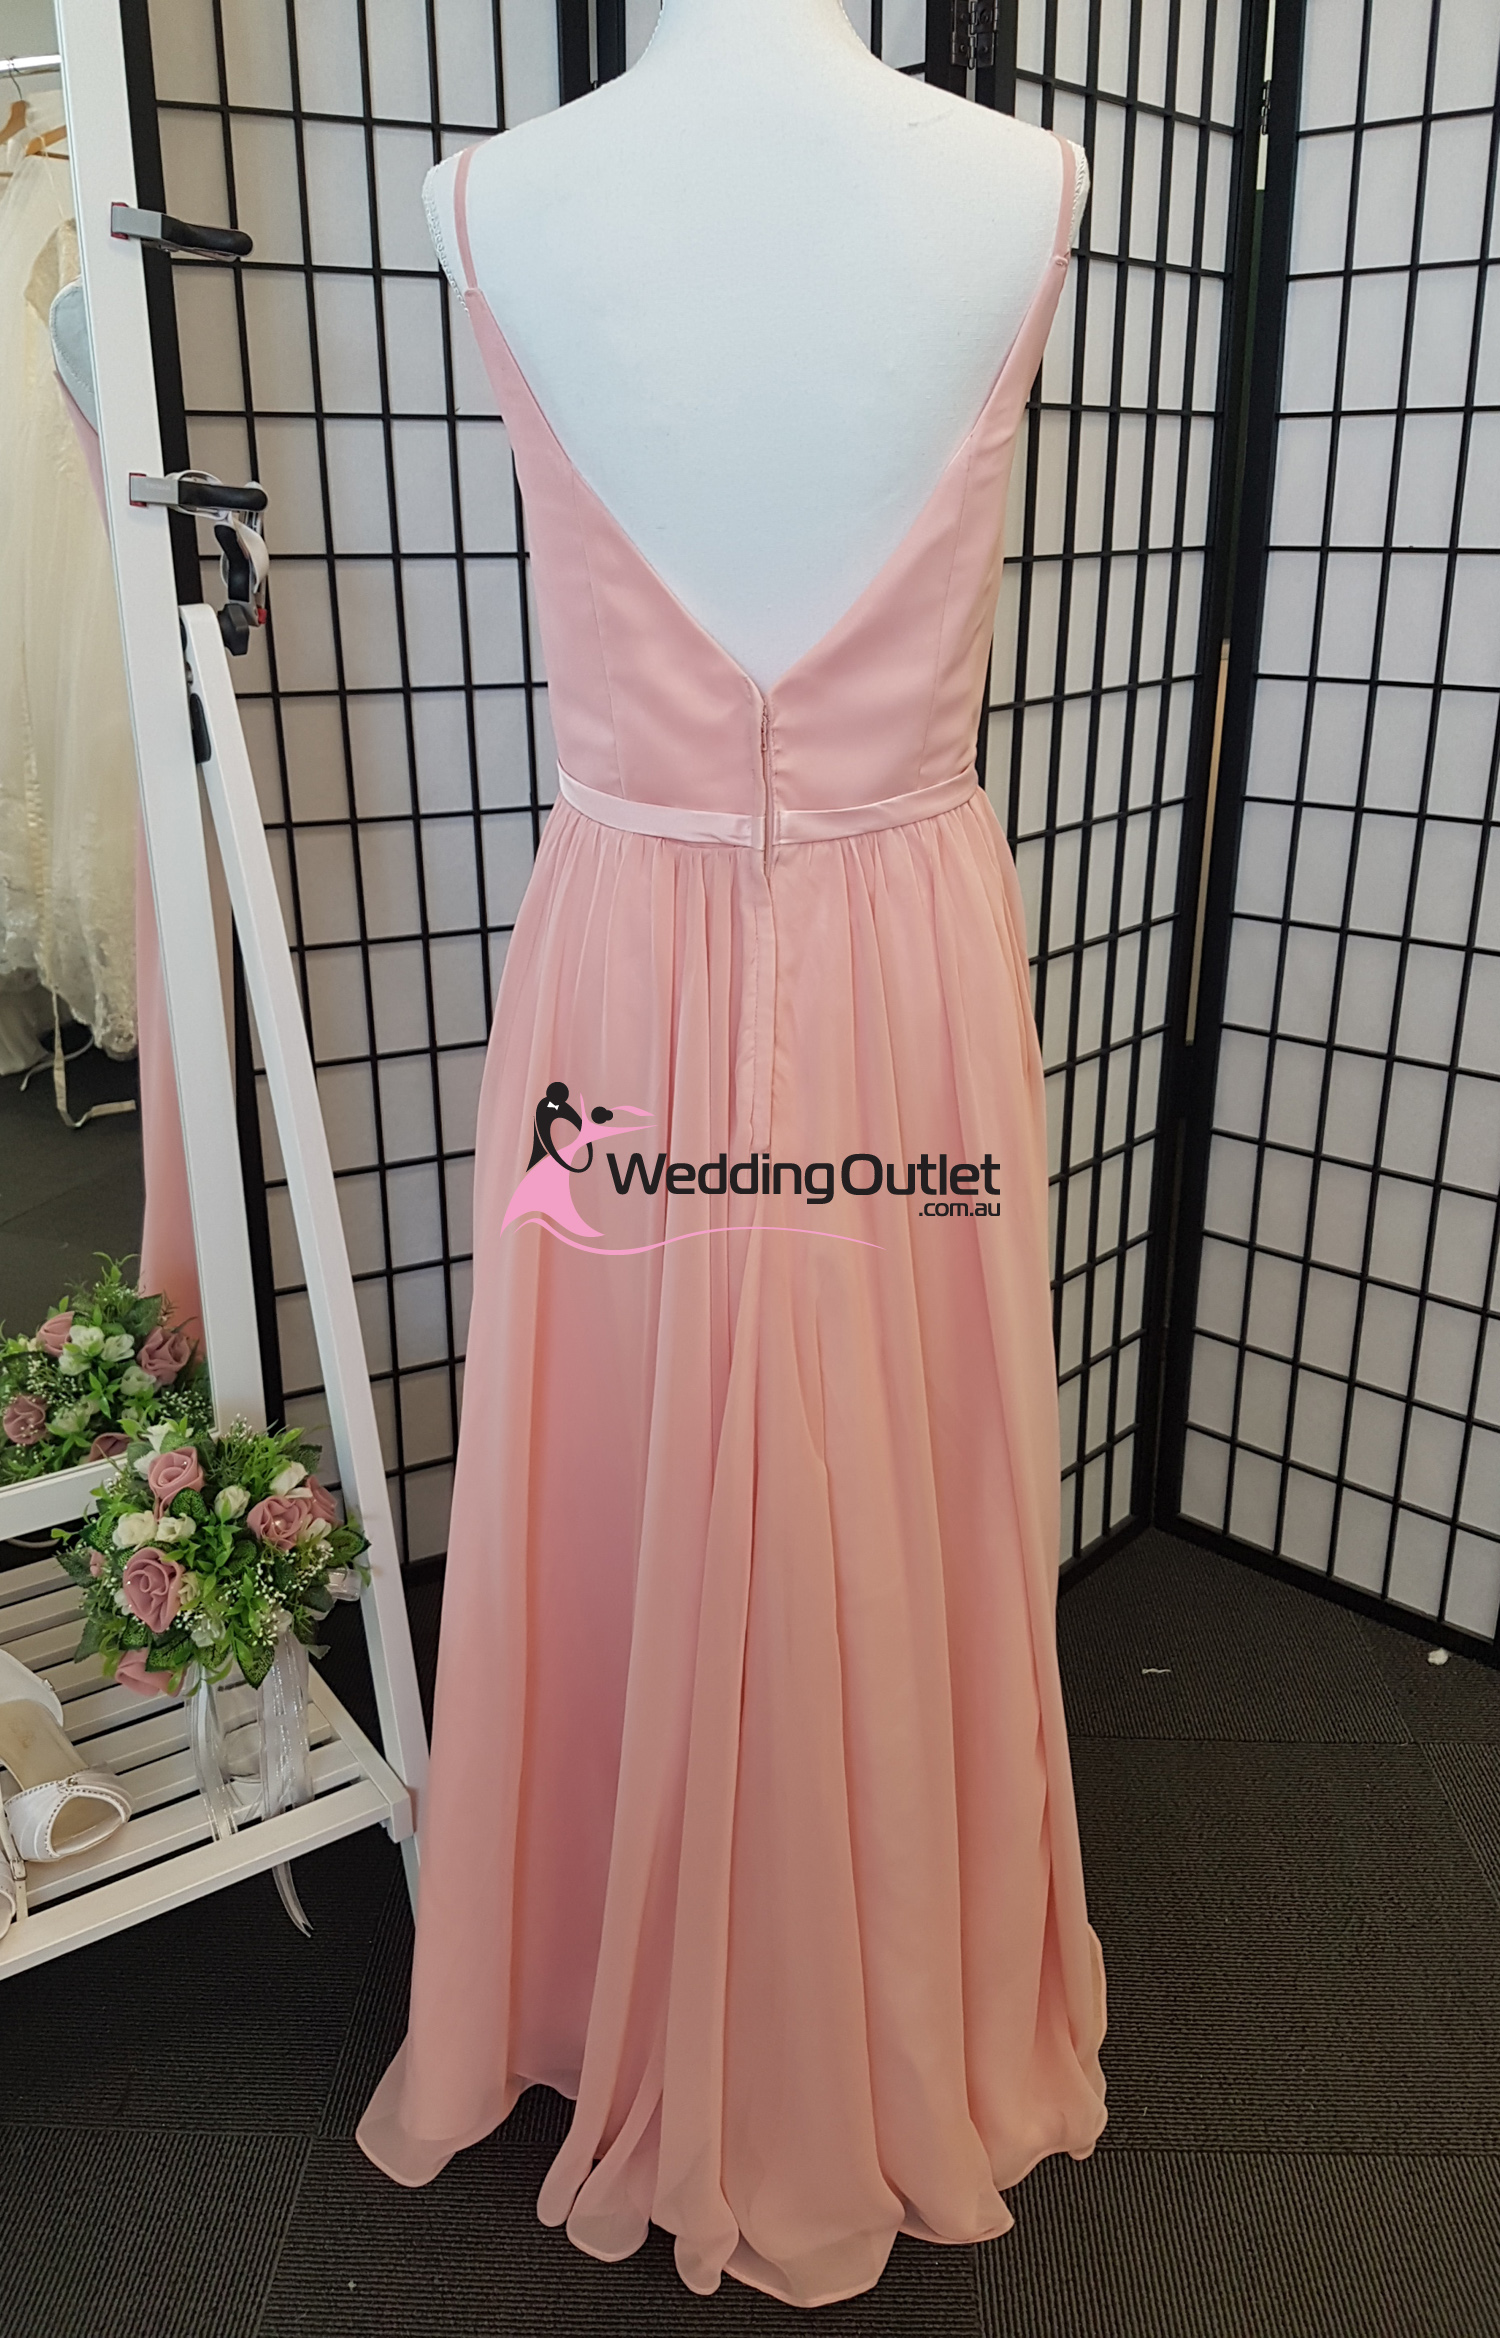 Rose bridesmaid dress v neck style rr101 weddingoutlet for V neck wedding dresses australia